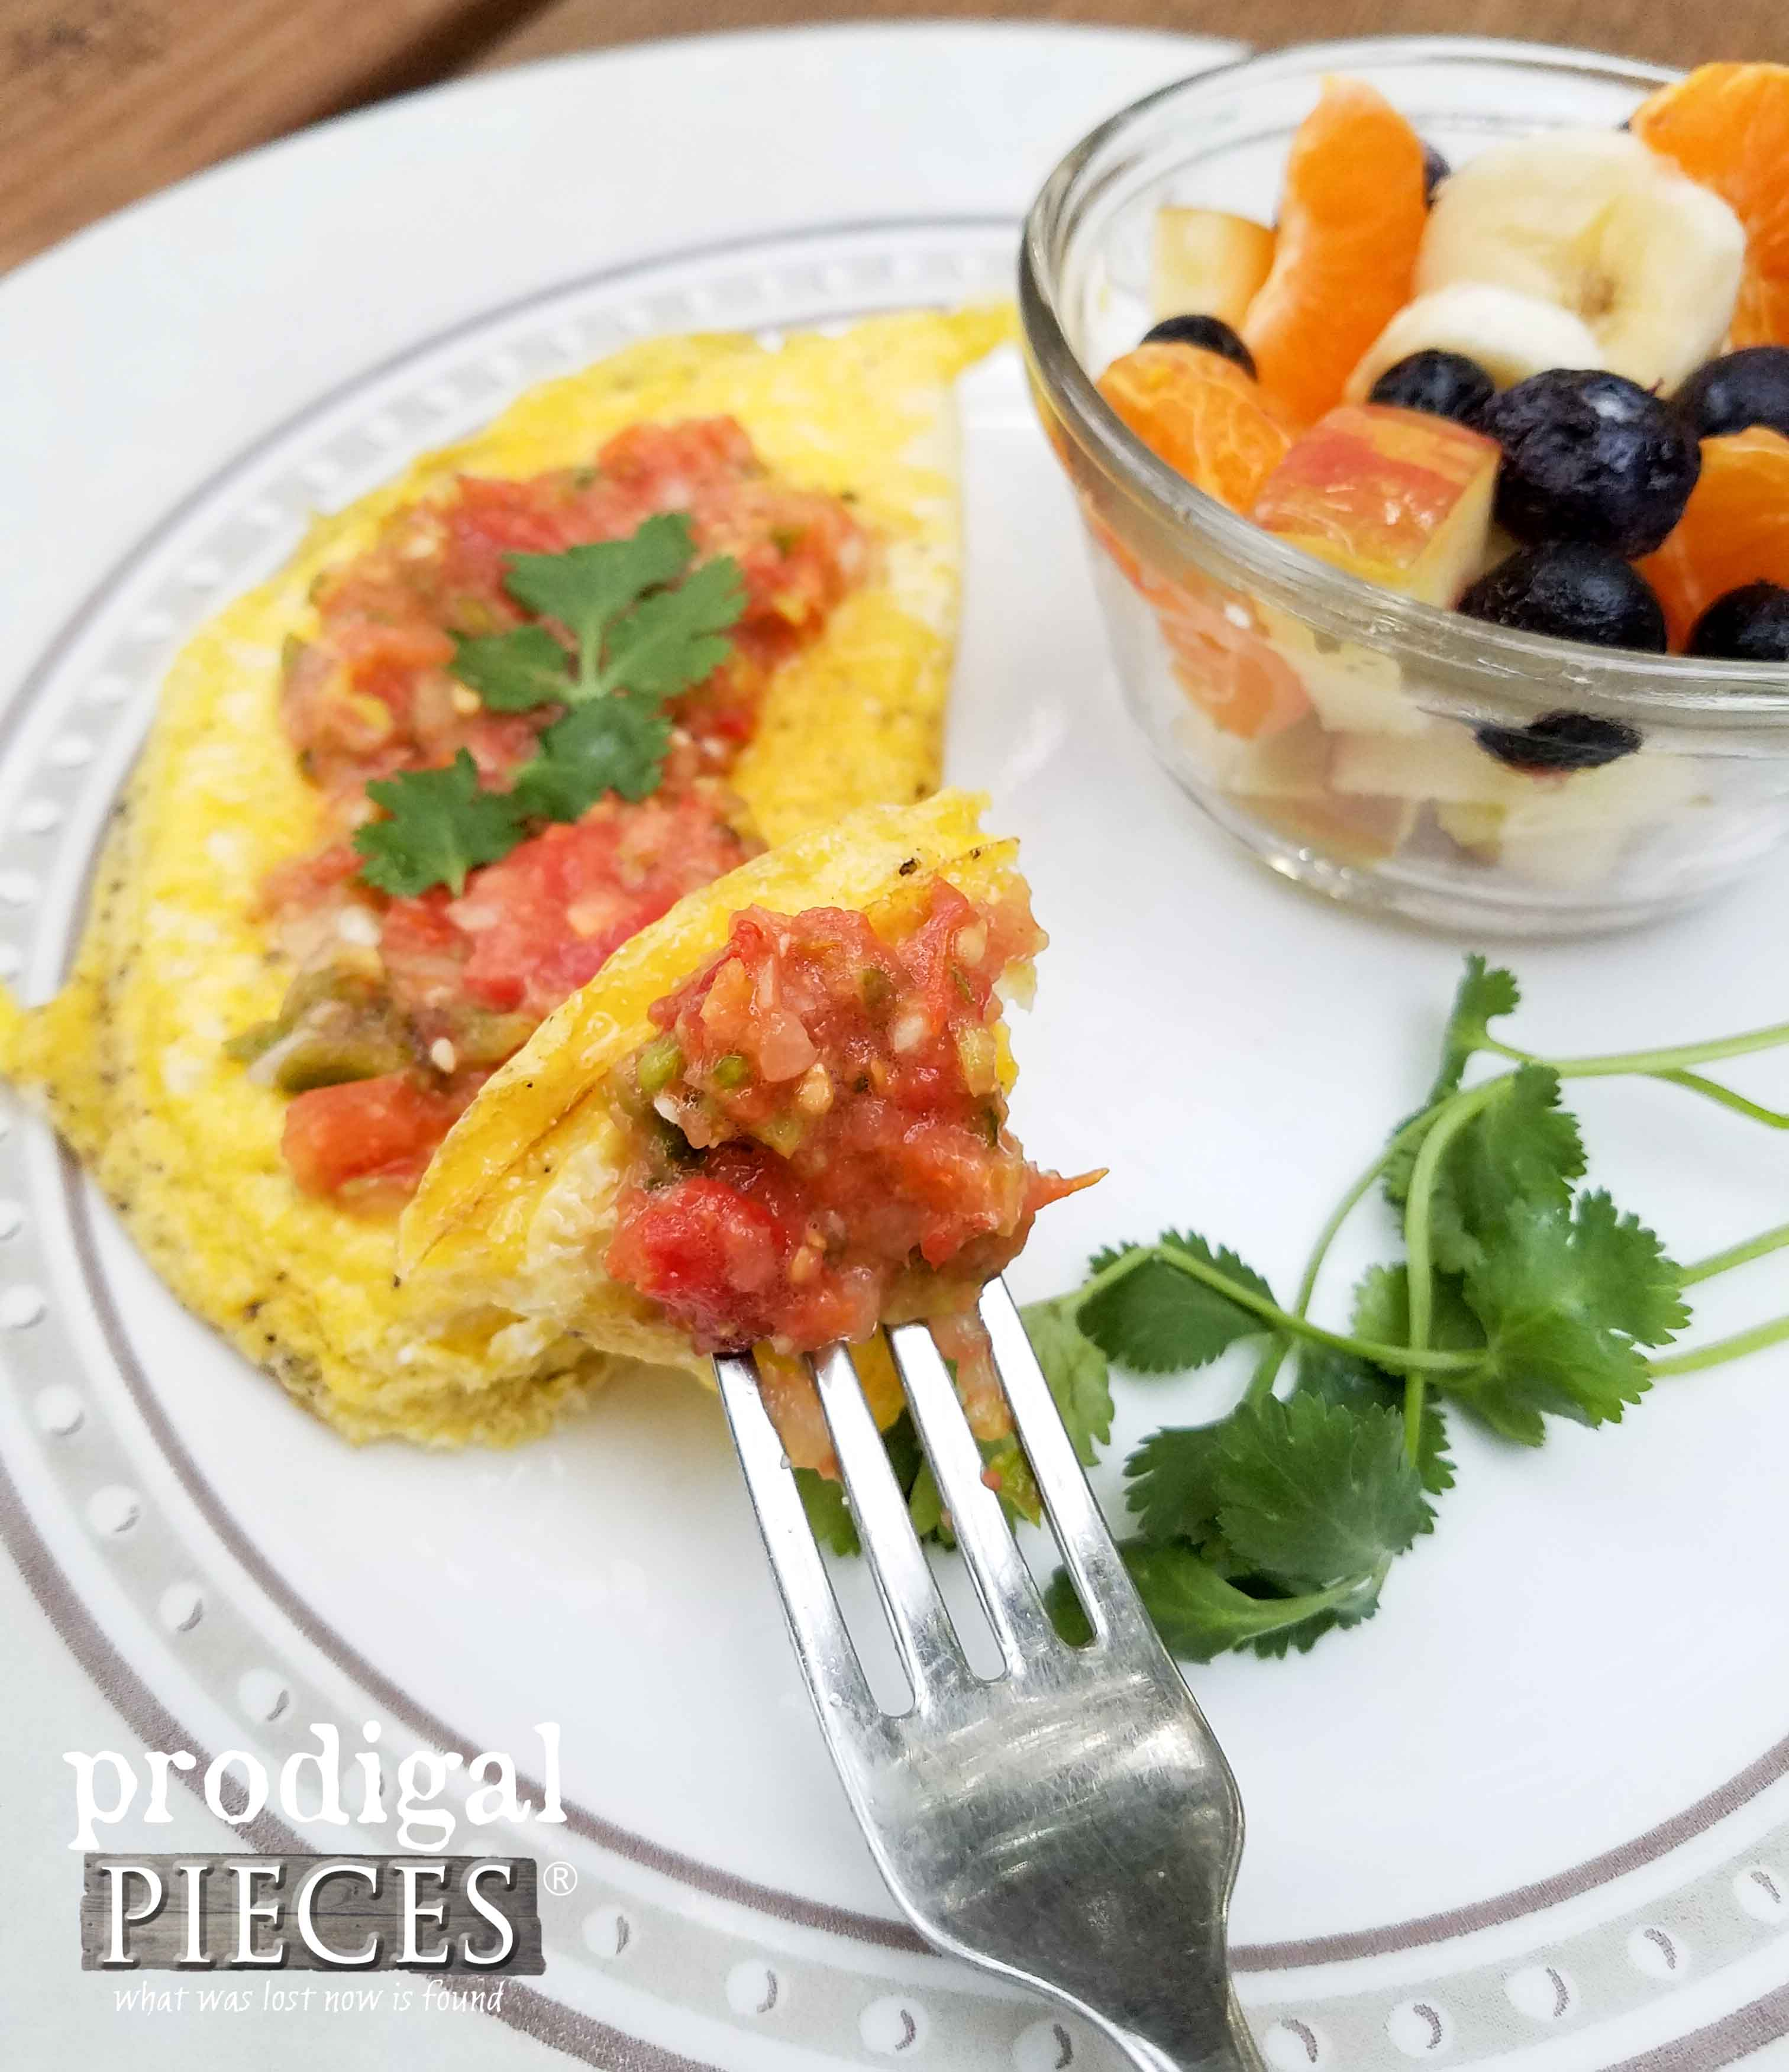 Fermented Salsa on Fried Egg with Fruit Salad for a Nourishing Breakfast by Prodigal Pieces | www.prodigalpieces.com